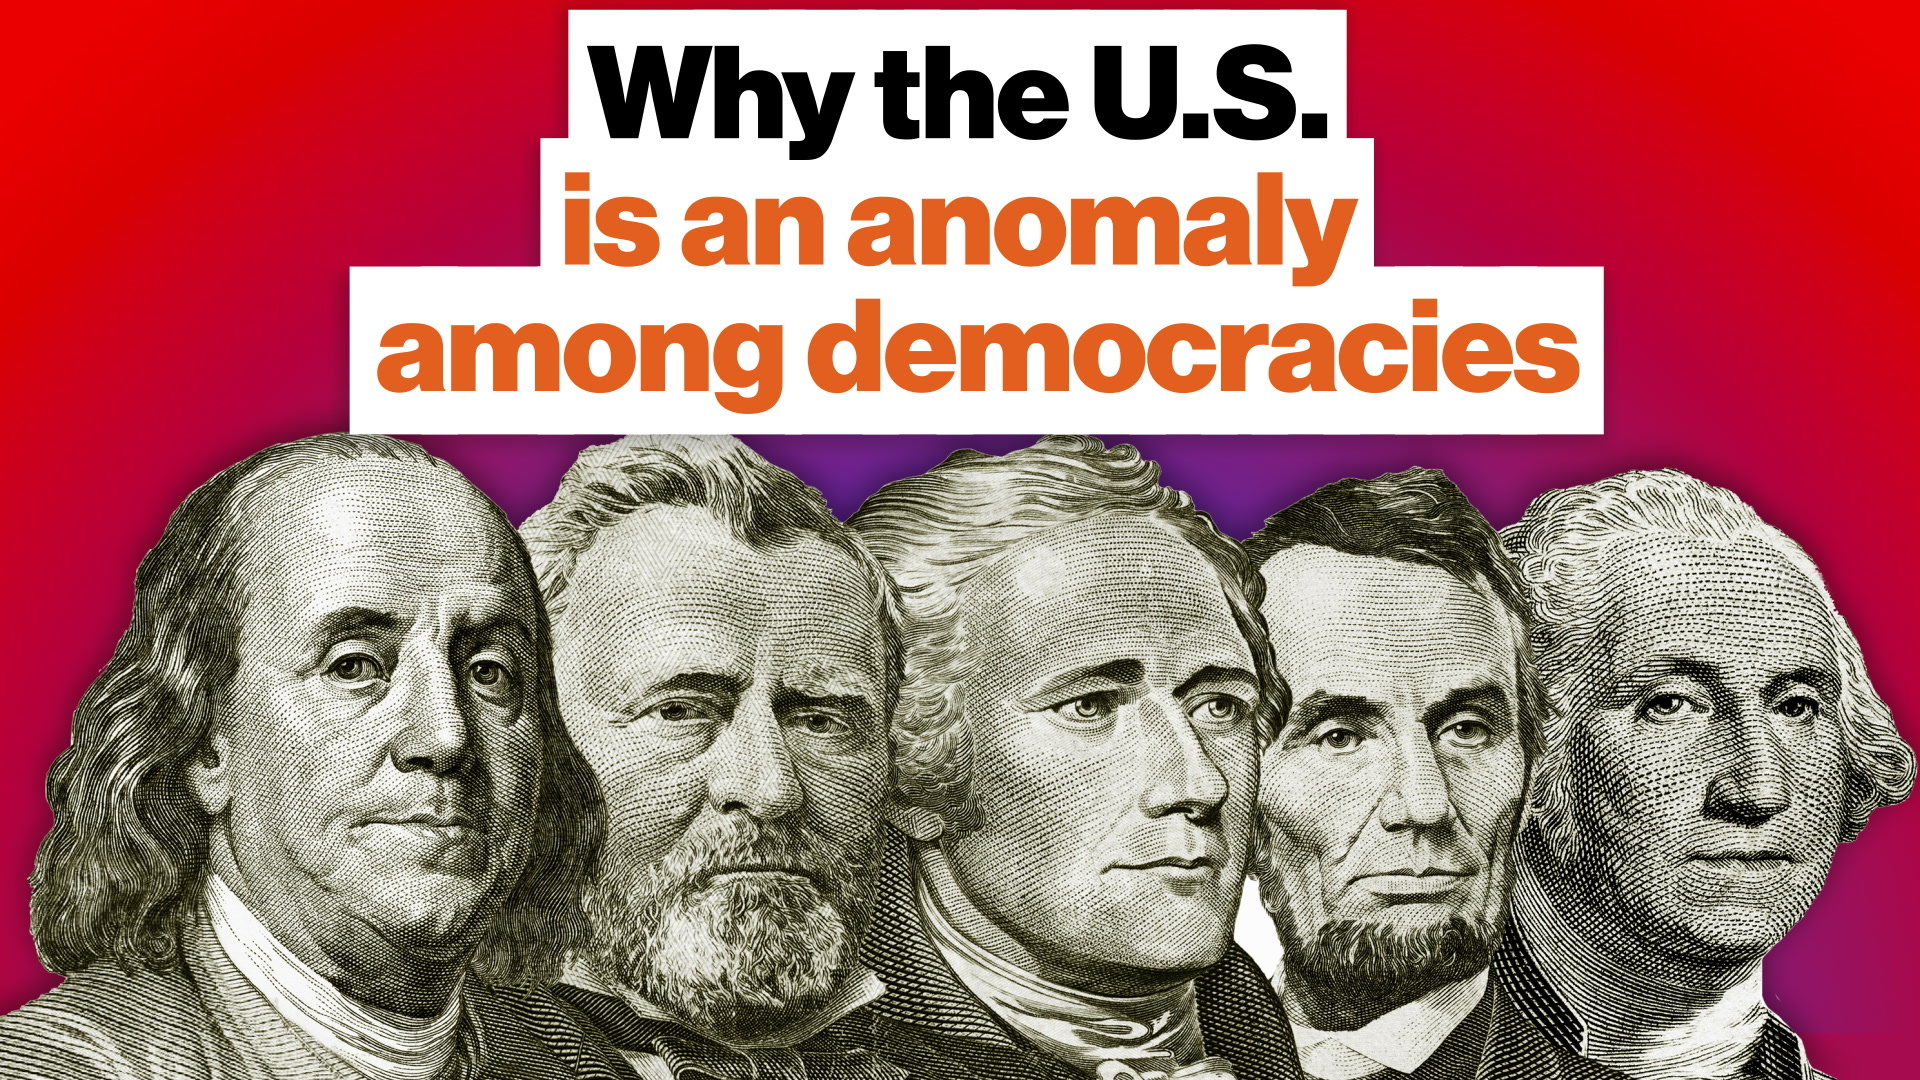 Why the U.S. is an anomaly among democracies